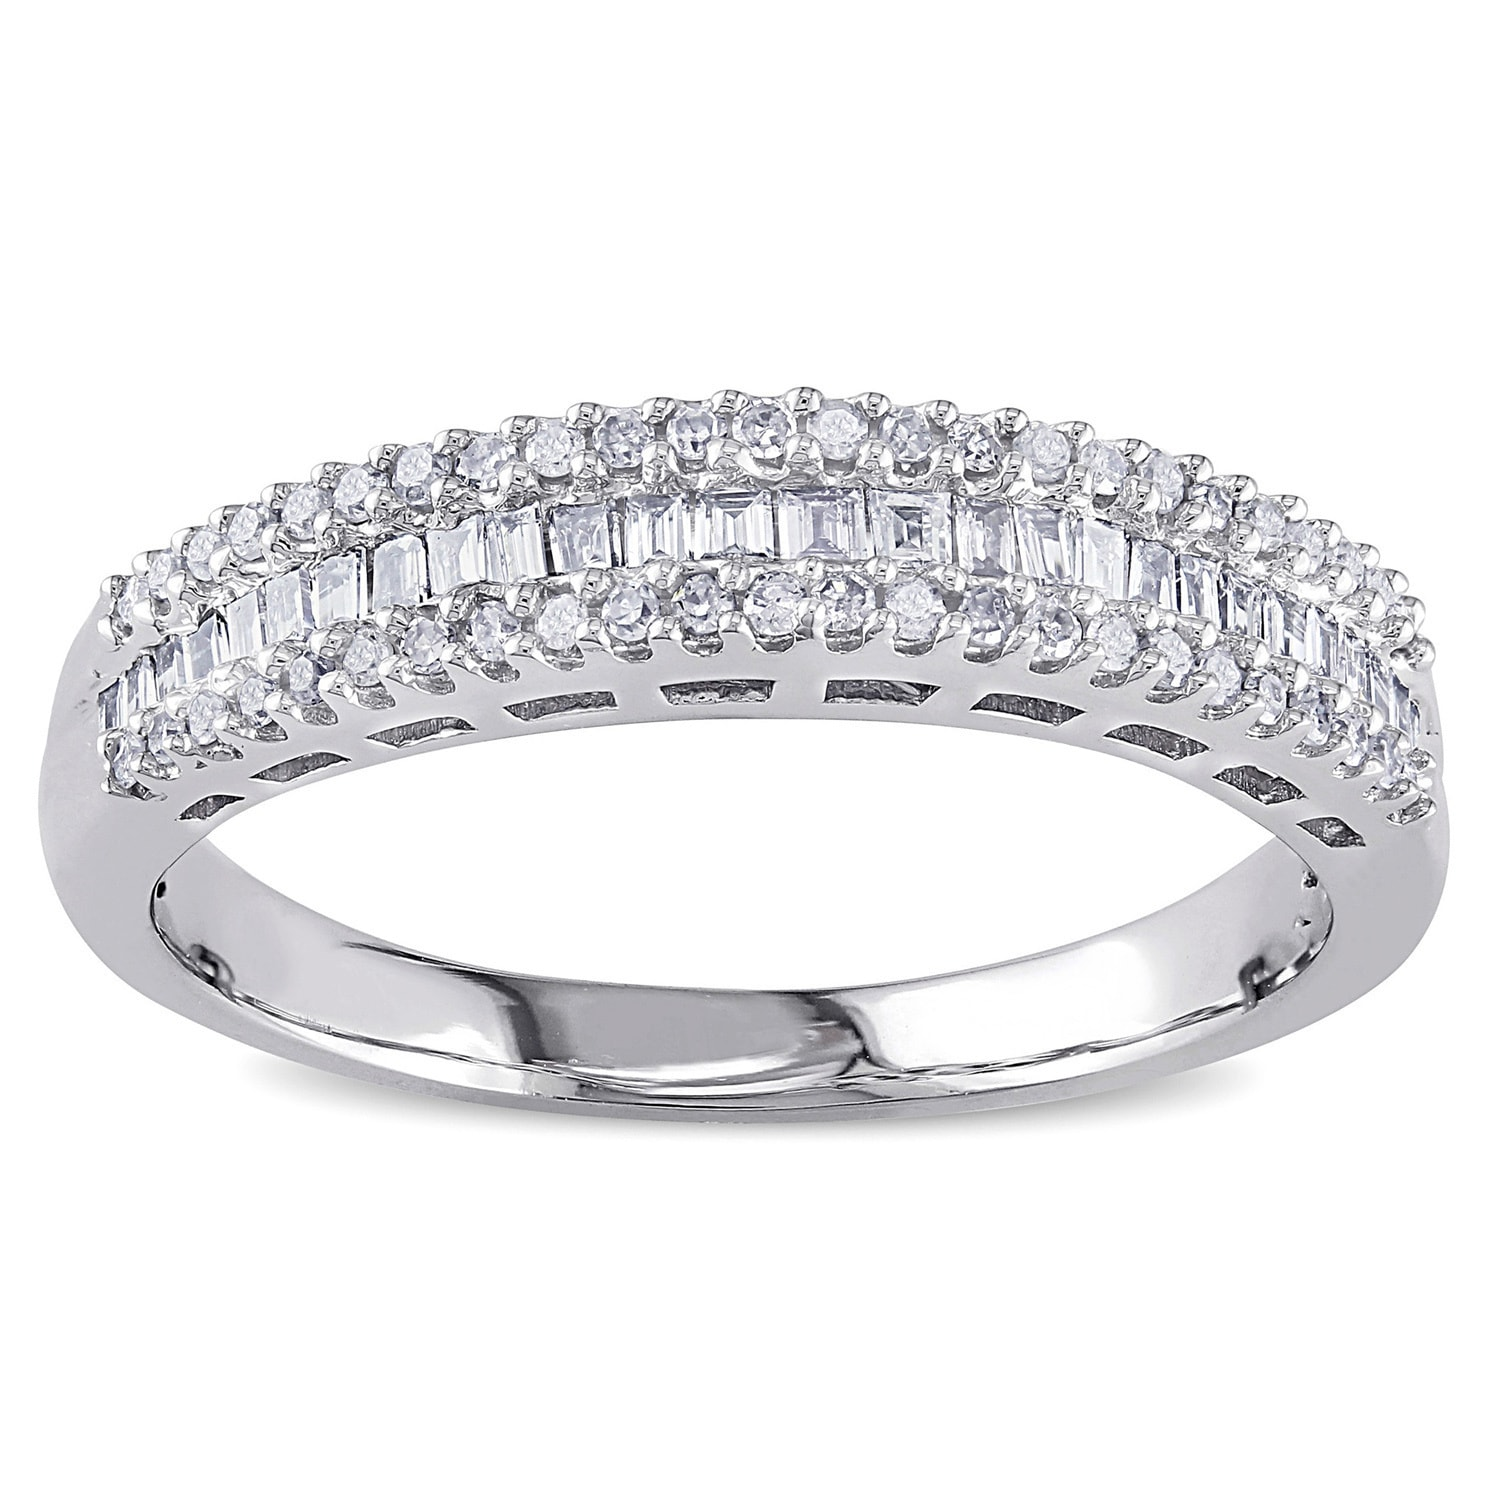 brilliant channel kaplan band rings eternity diamond engagement products solitaire round ring arthur baguette white gold cut and bands